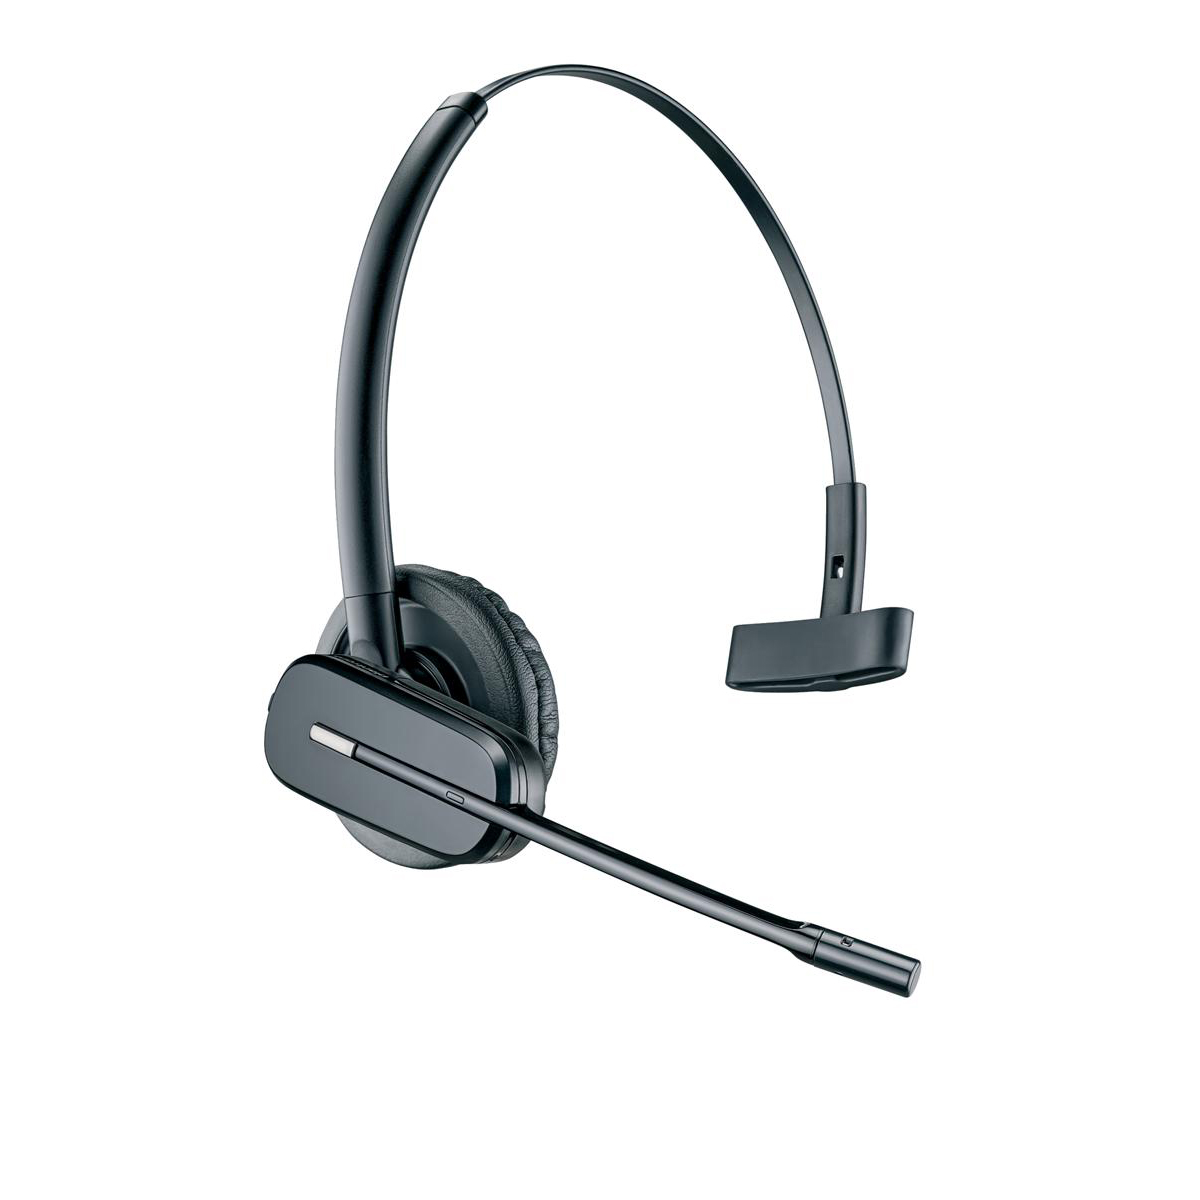 Headsets Plantronics CS540 Headset or Earpiece Monaural Convertible DECT Cordless Lightweight Ref 84693-02